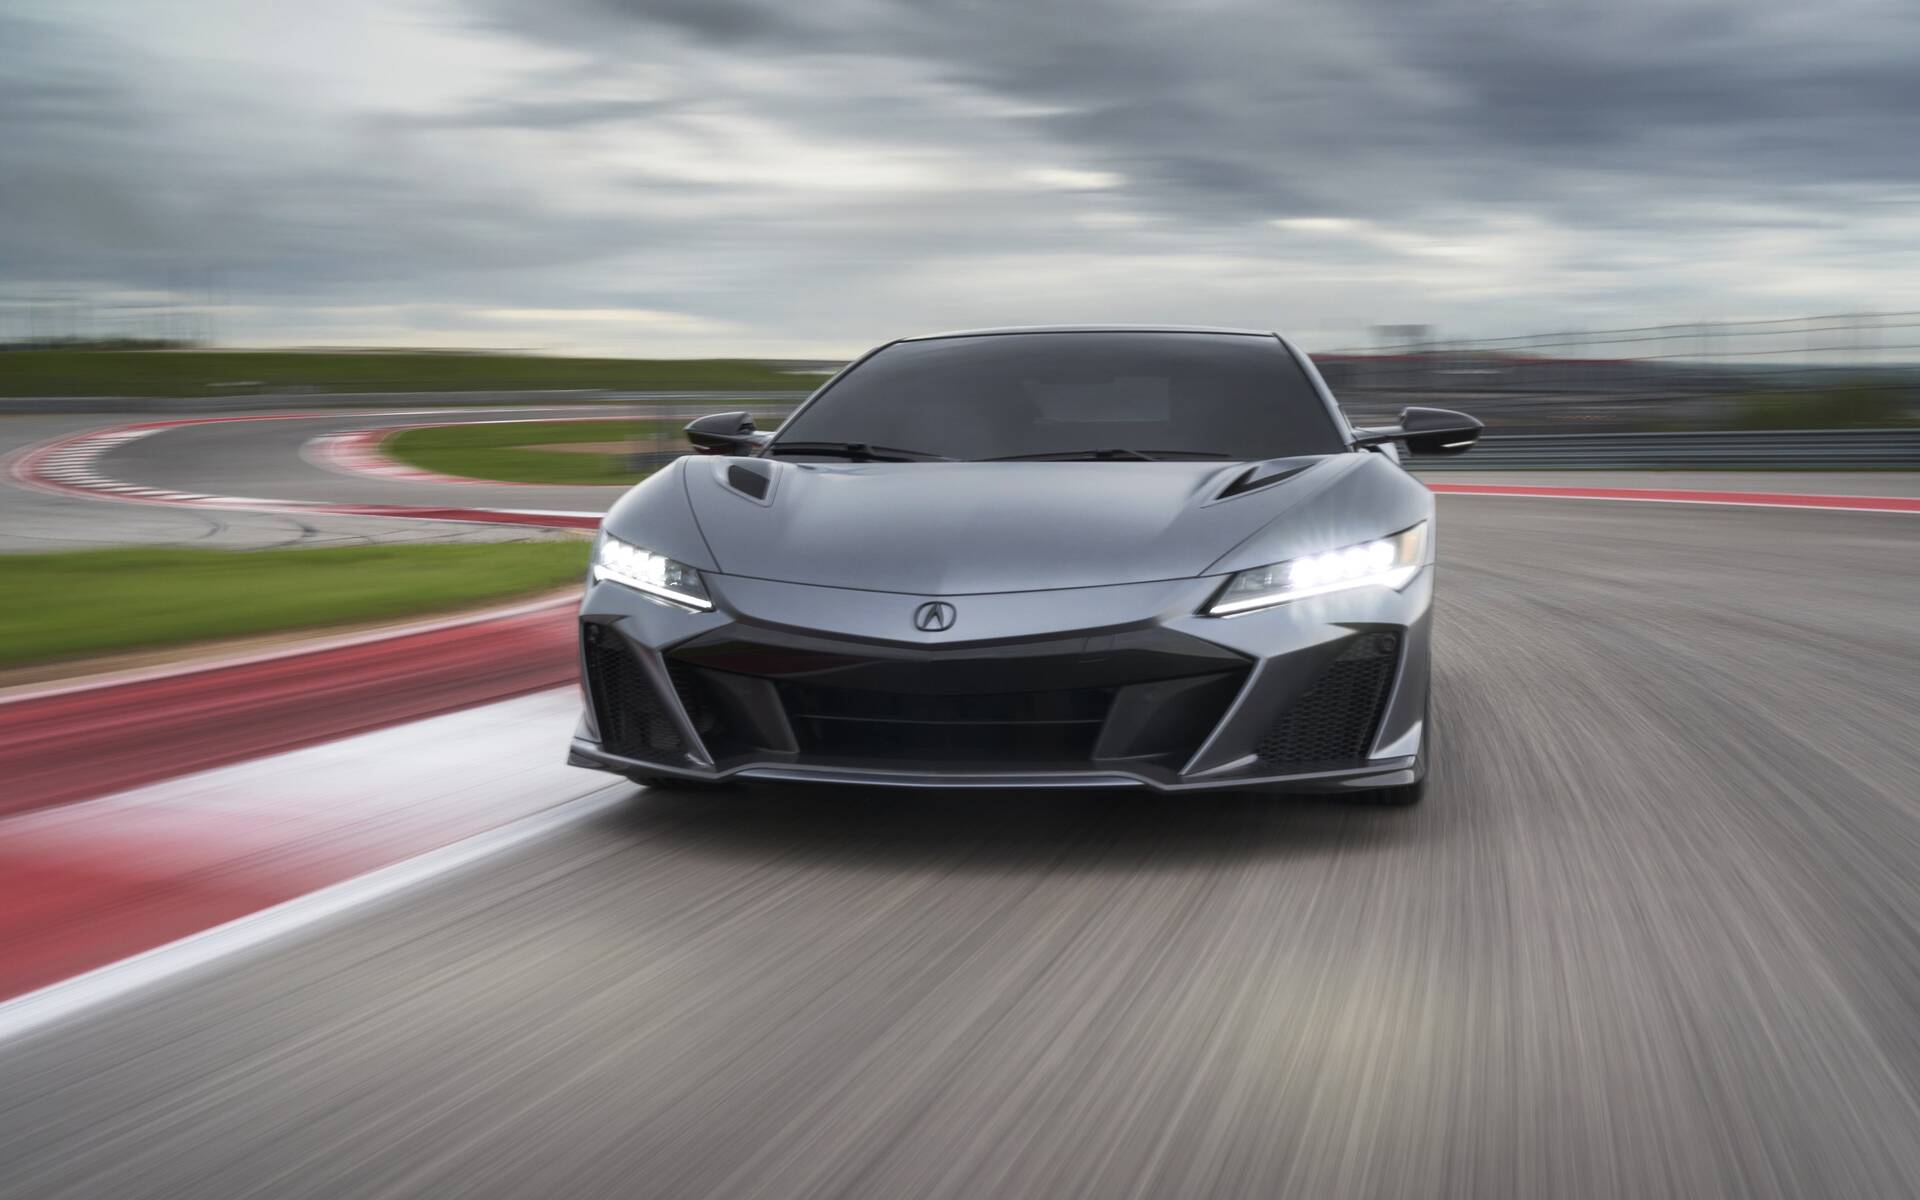 2022 Acura NSX Bows Out With 600-horsepower Type S - The Car Guide